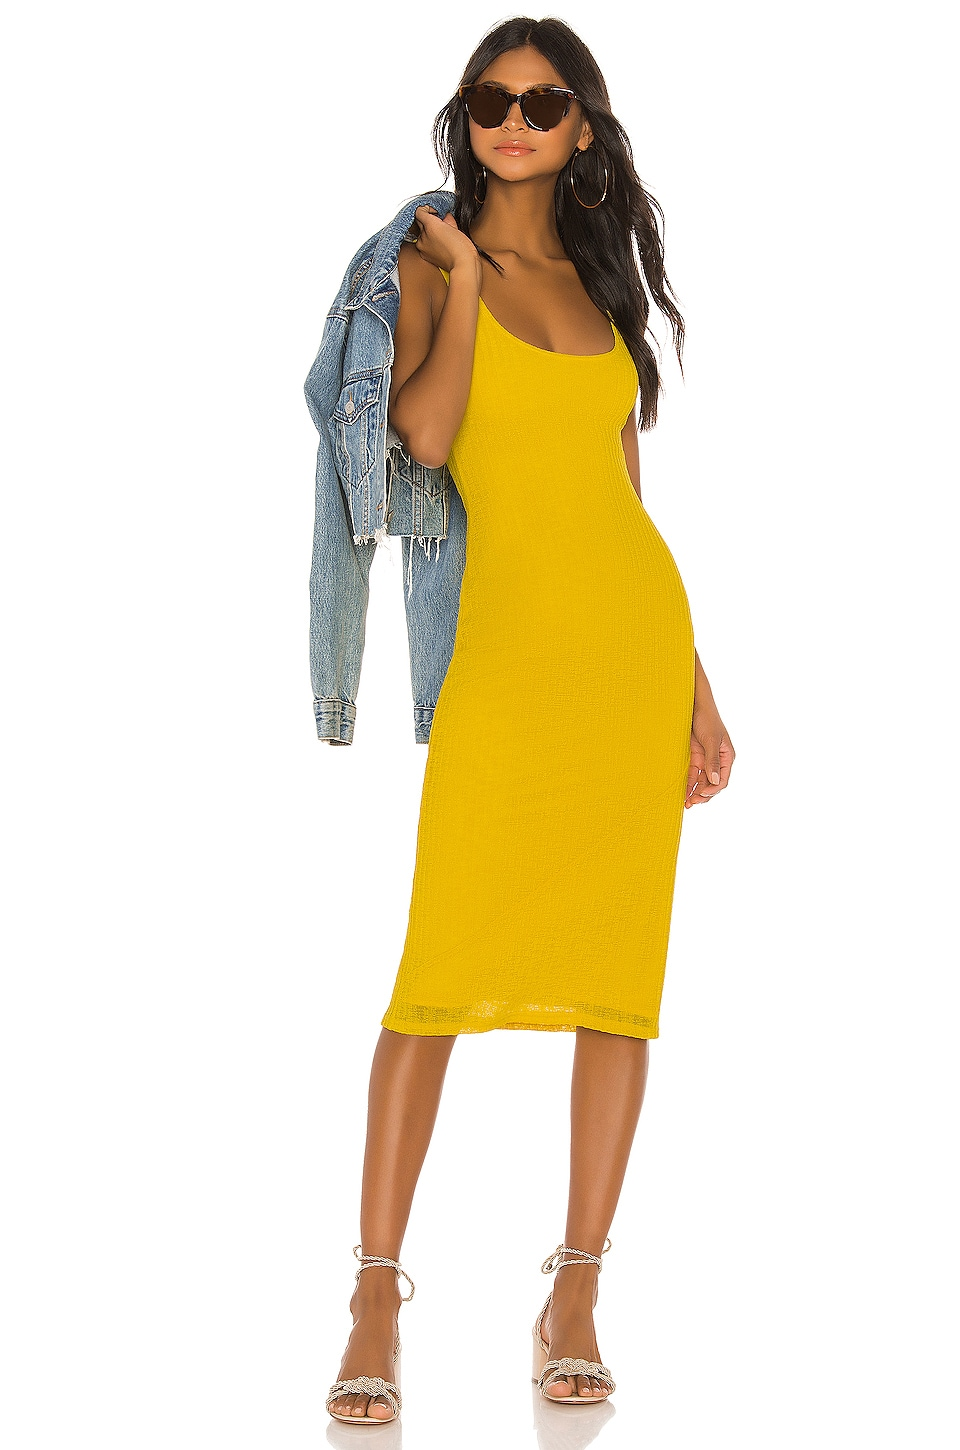 House of Harlow 1960 X REVOLVE Fatima Dress in Vibrant Yellow